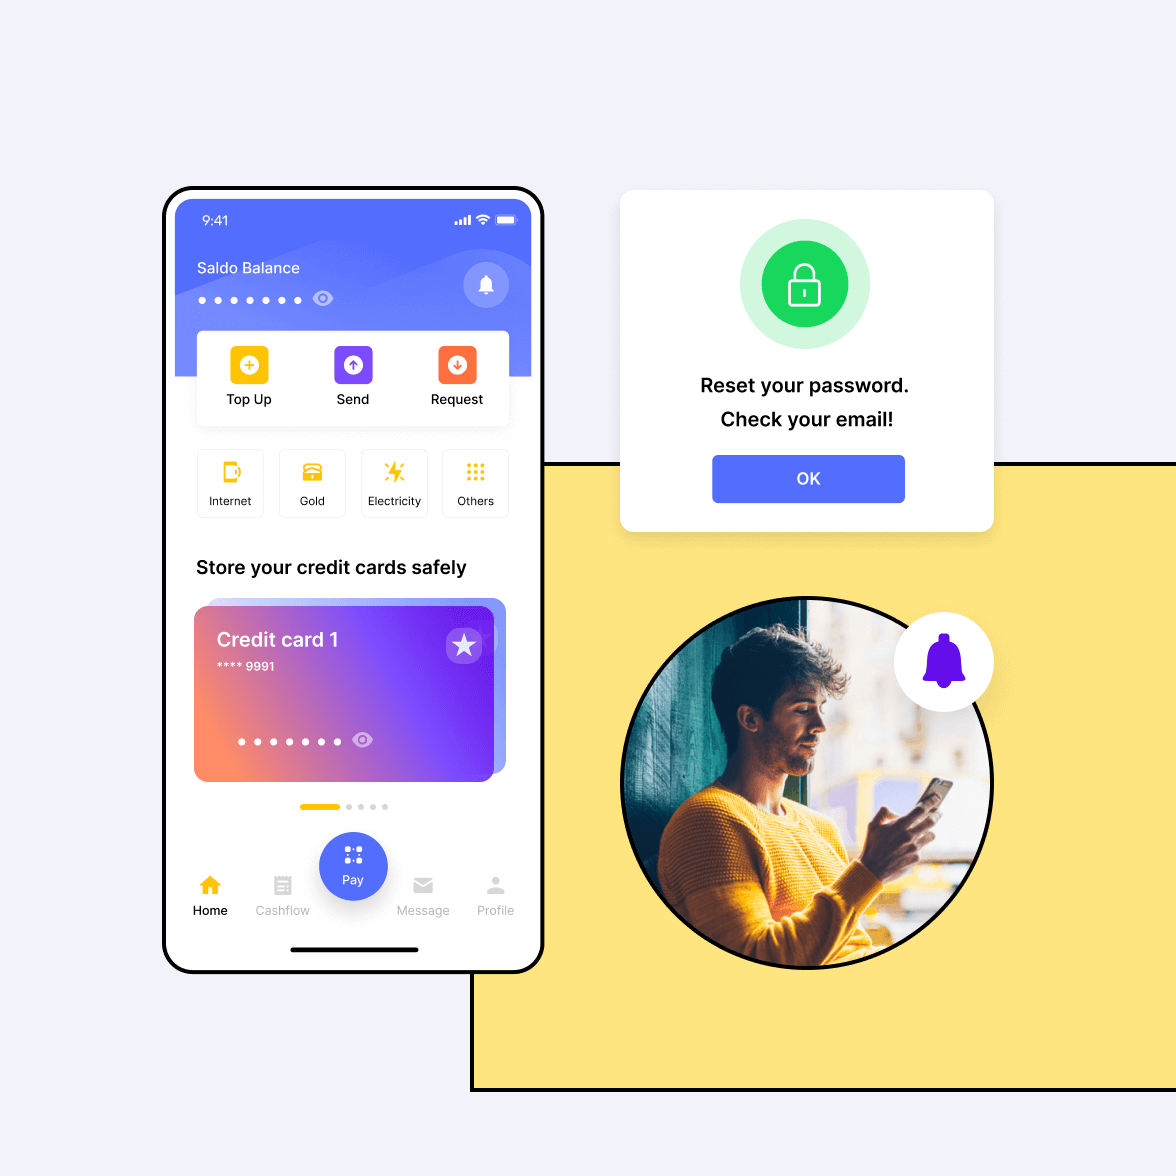 Fintech app screen with a mobile phone user